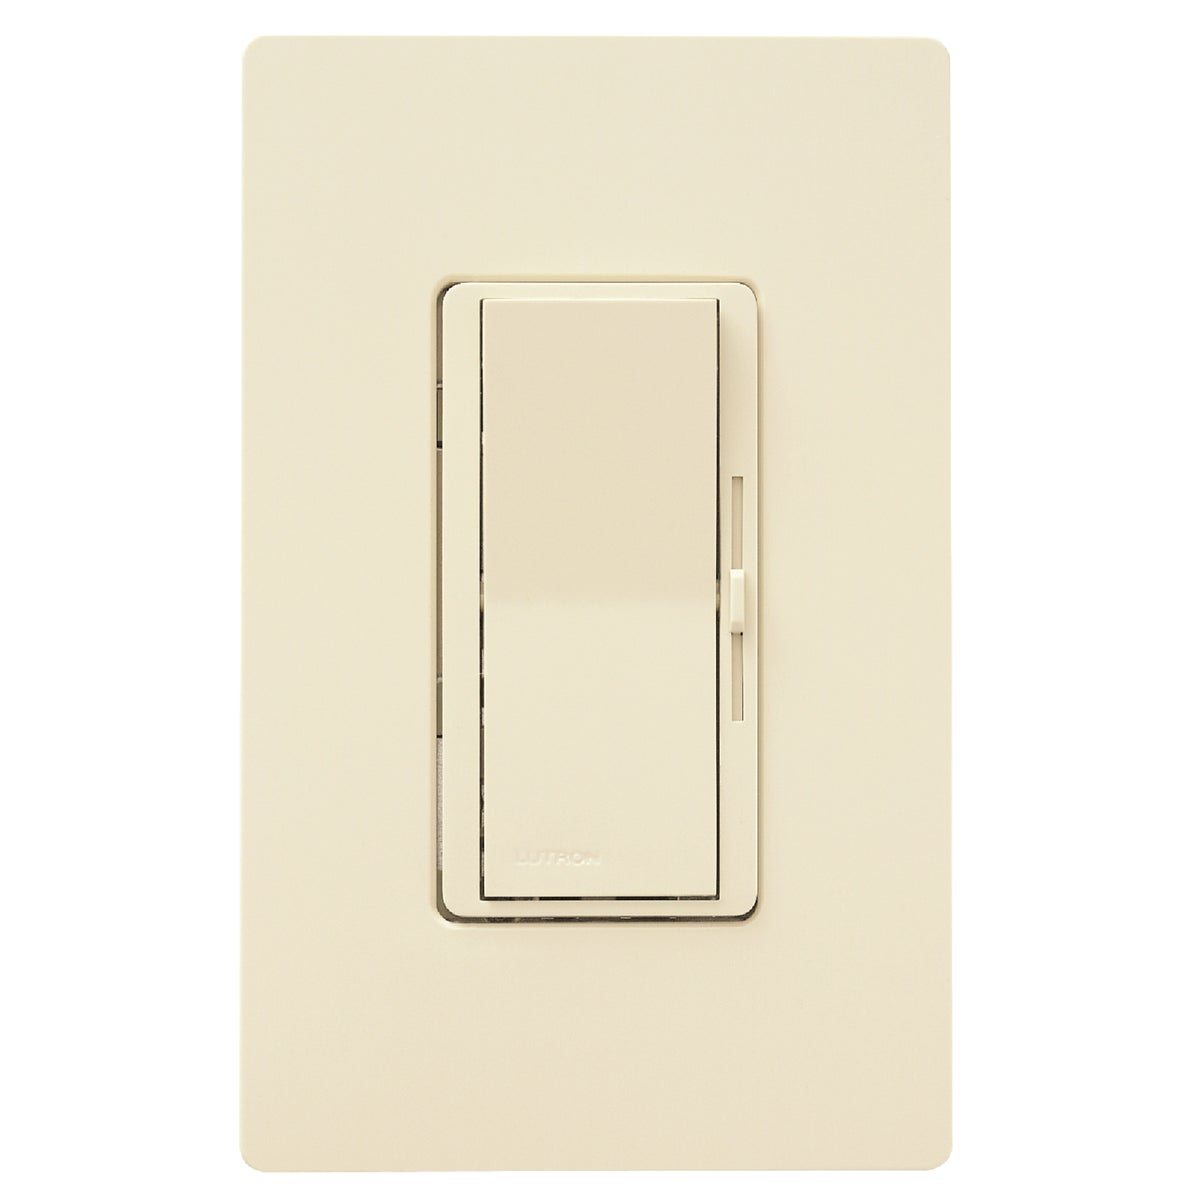 IV SP SLIDE DIMMER - DVW-600PH-IV by Lutron Elect Co Inc